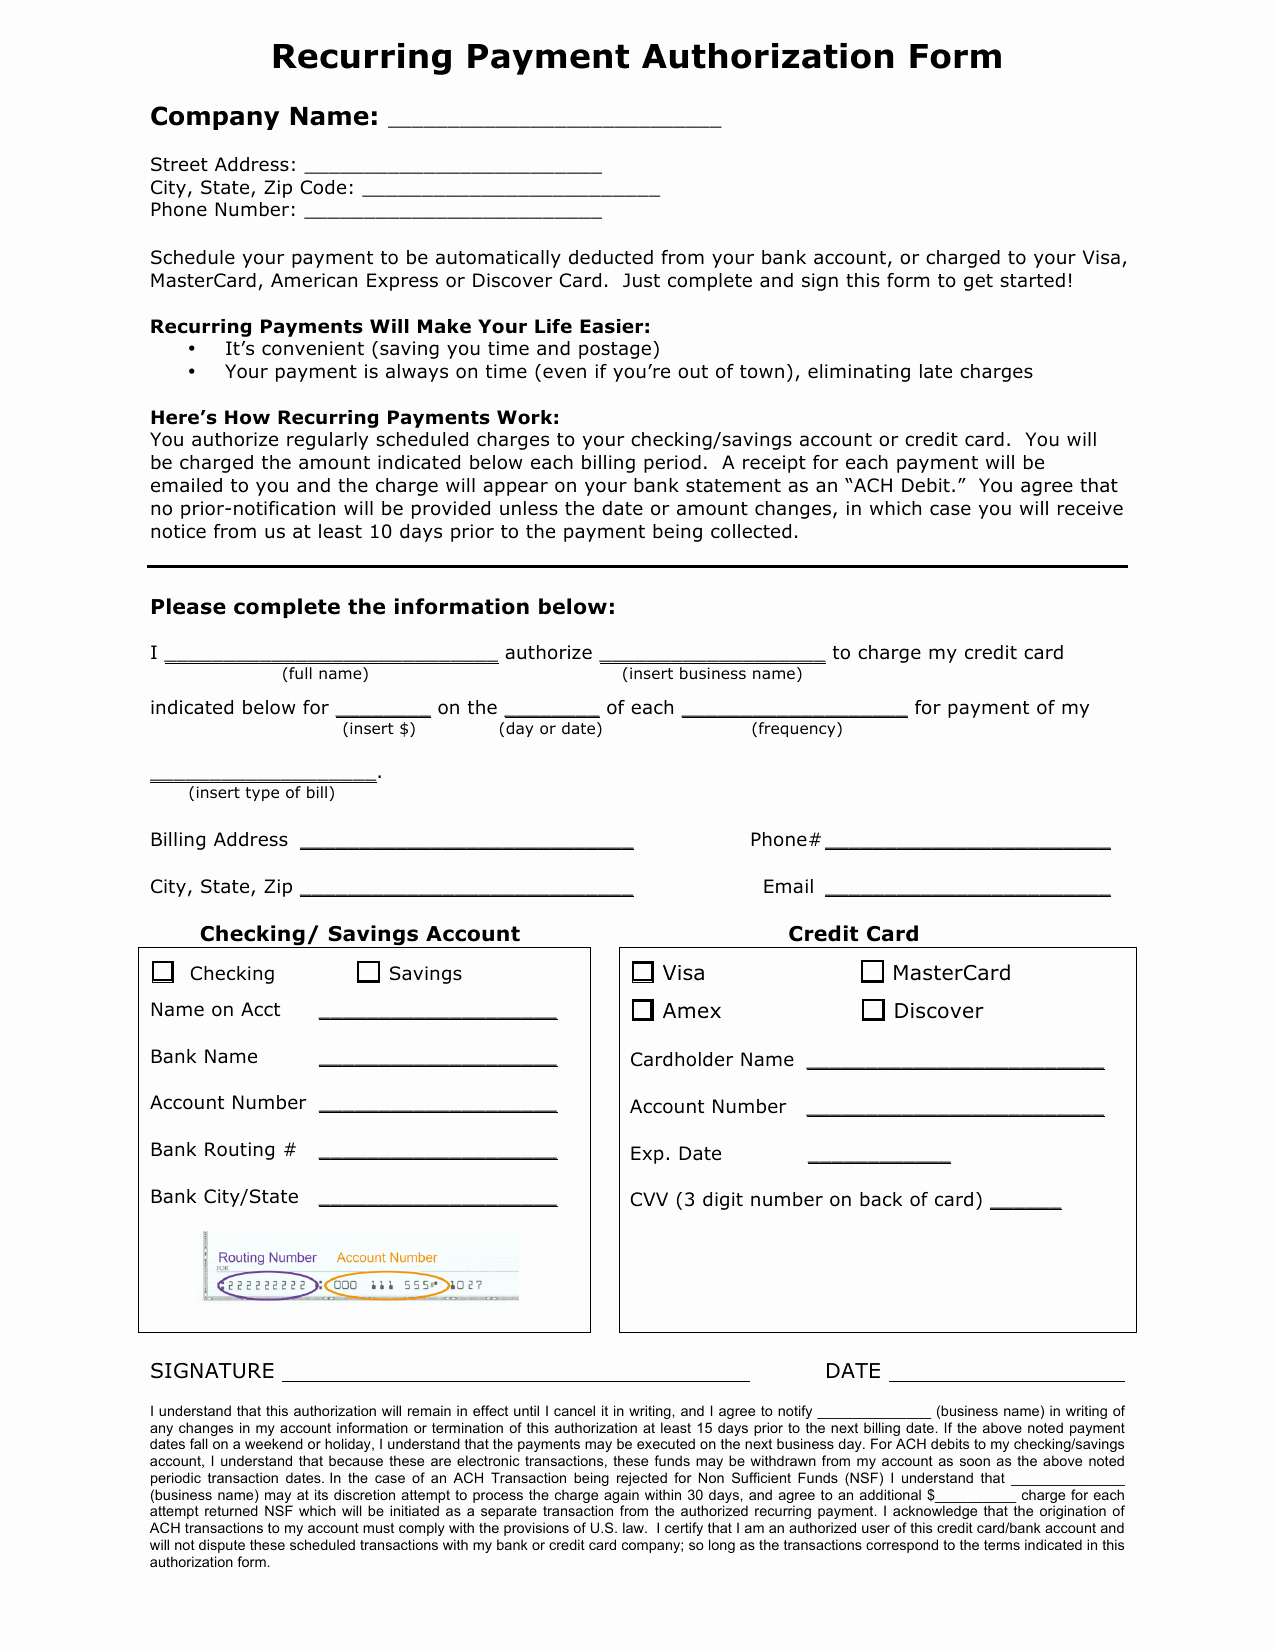 Credit Card Authorization form Word Unique Download Recurring Payment Authorization form Template